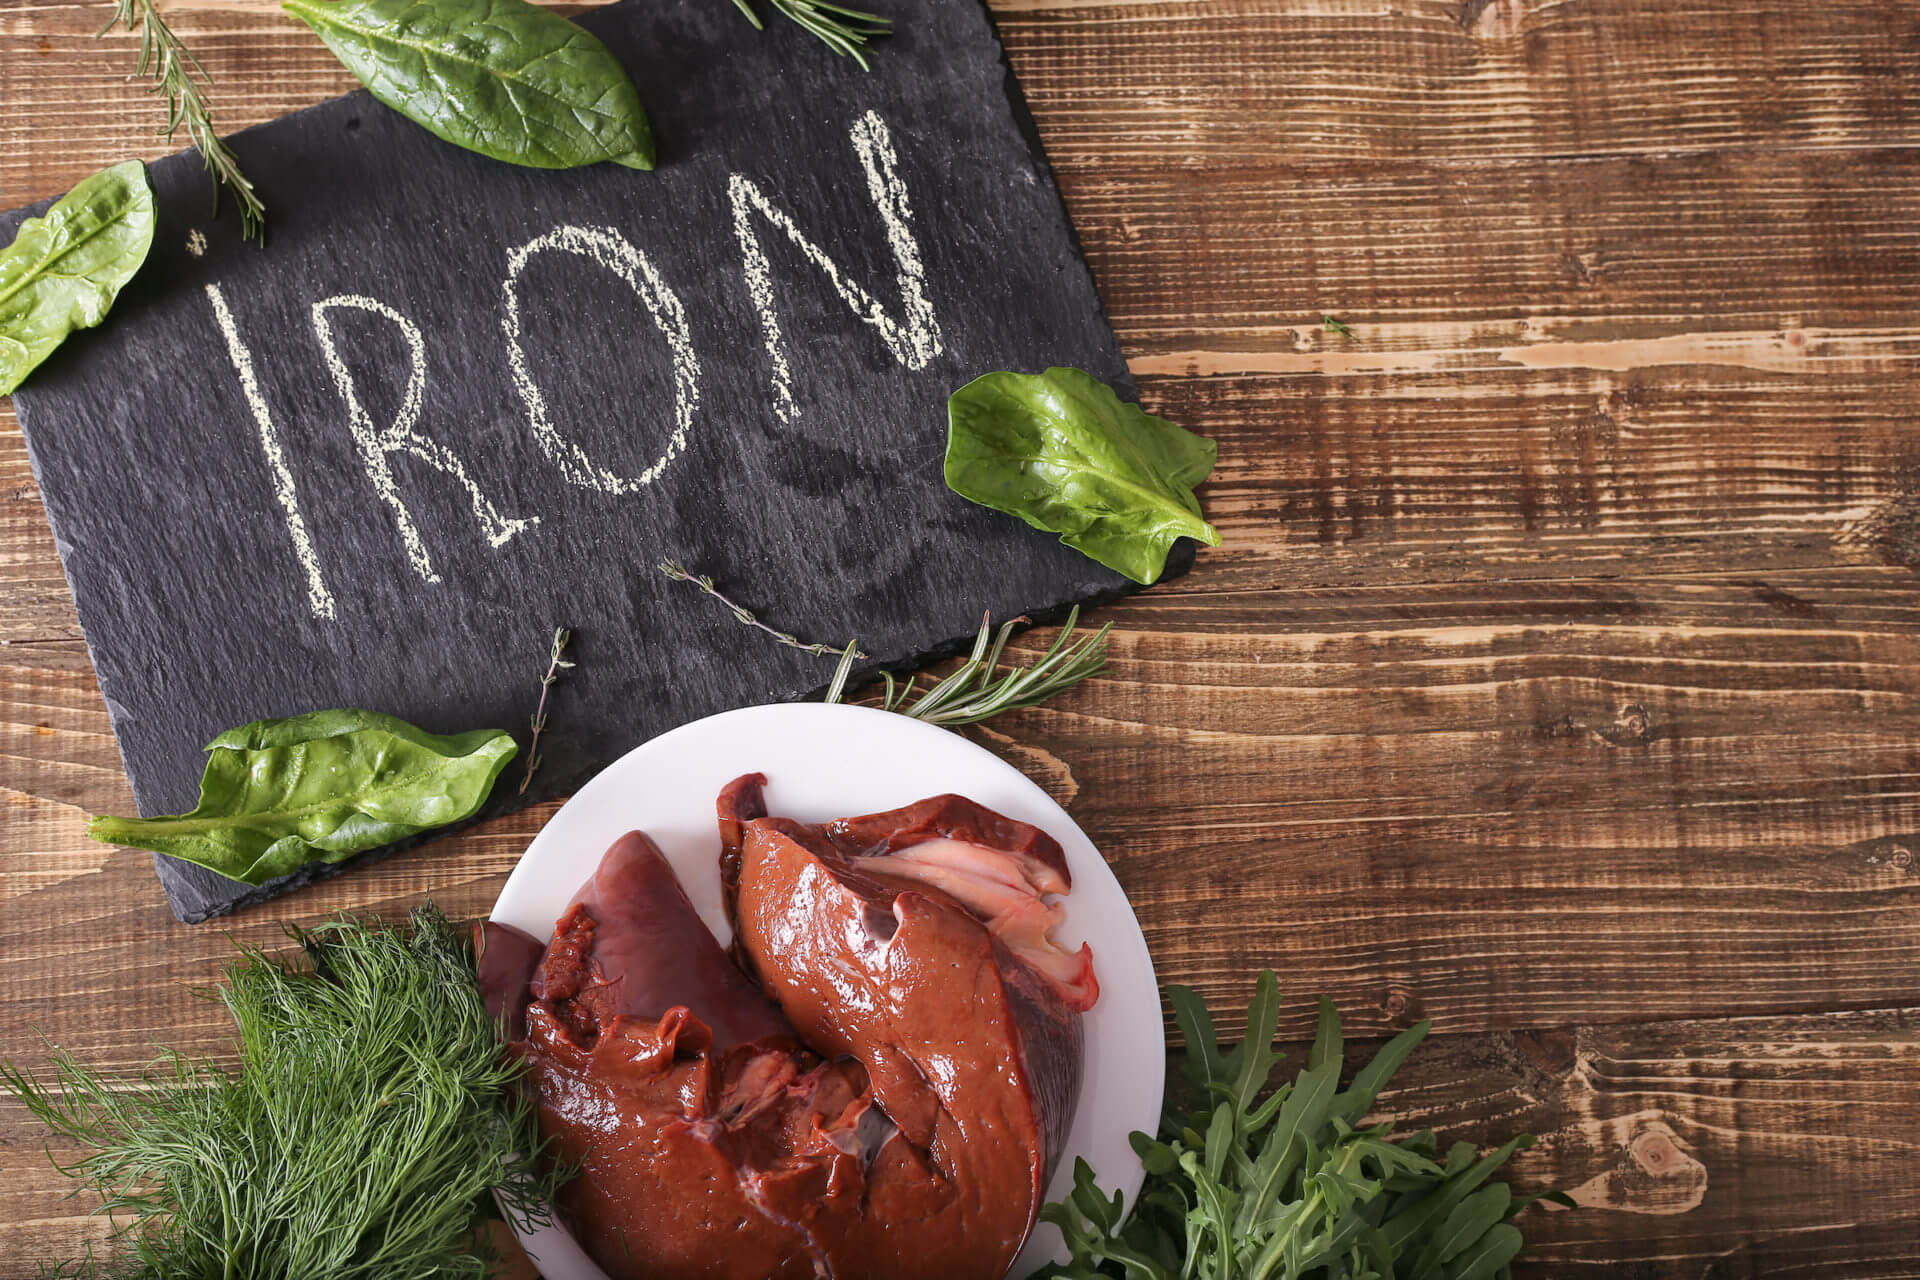 Liver is rich in heme iron